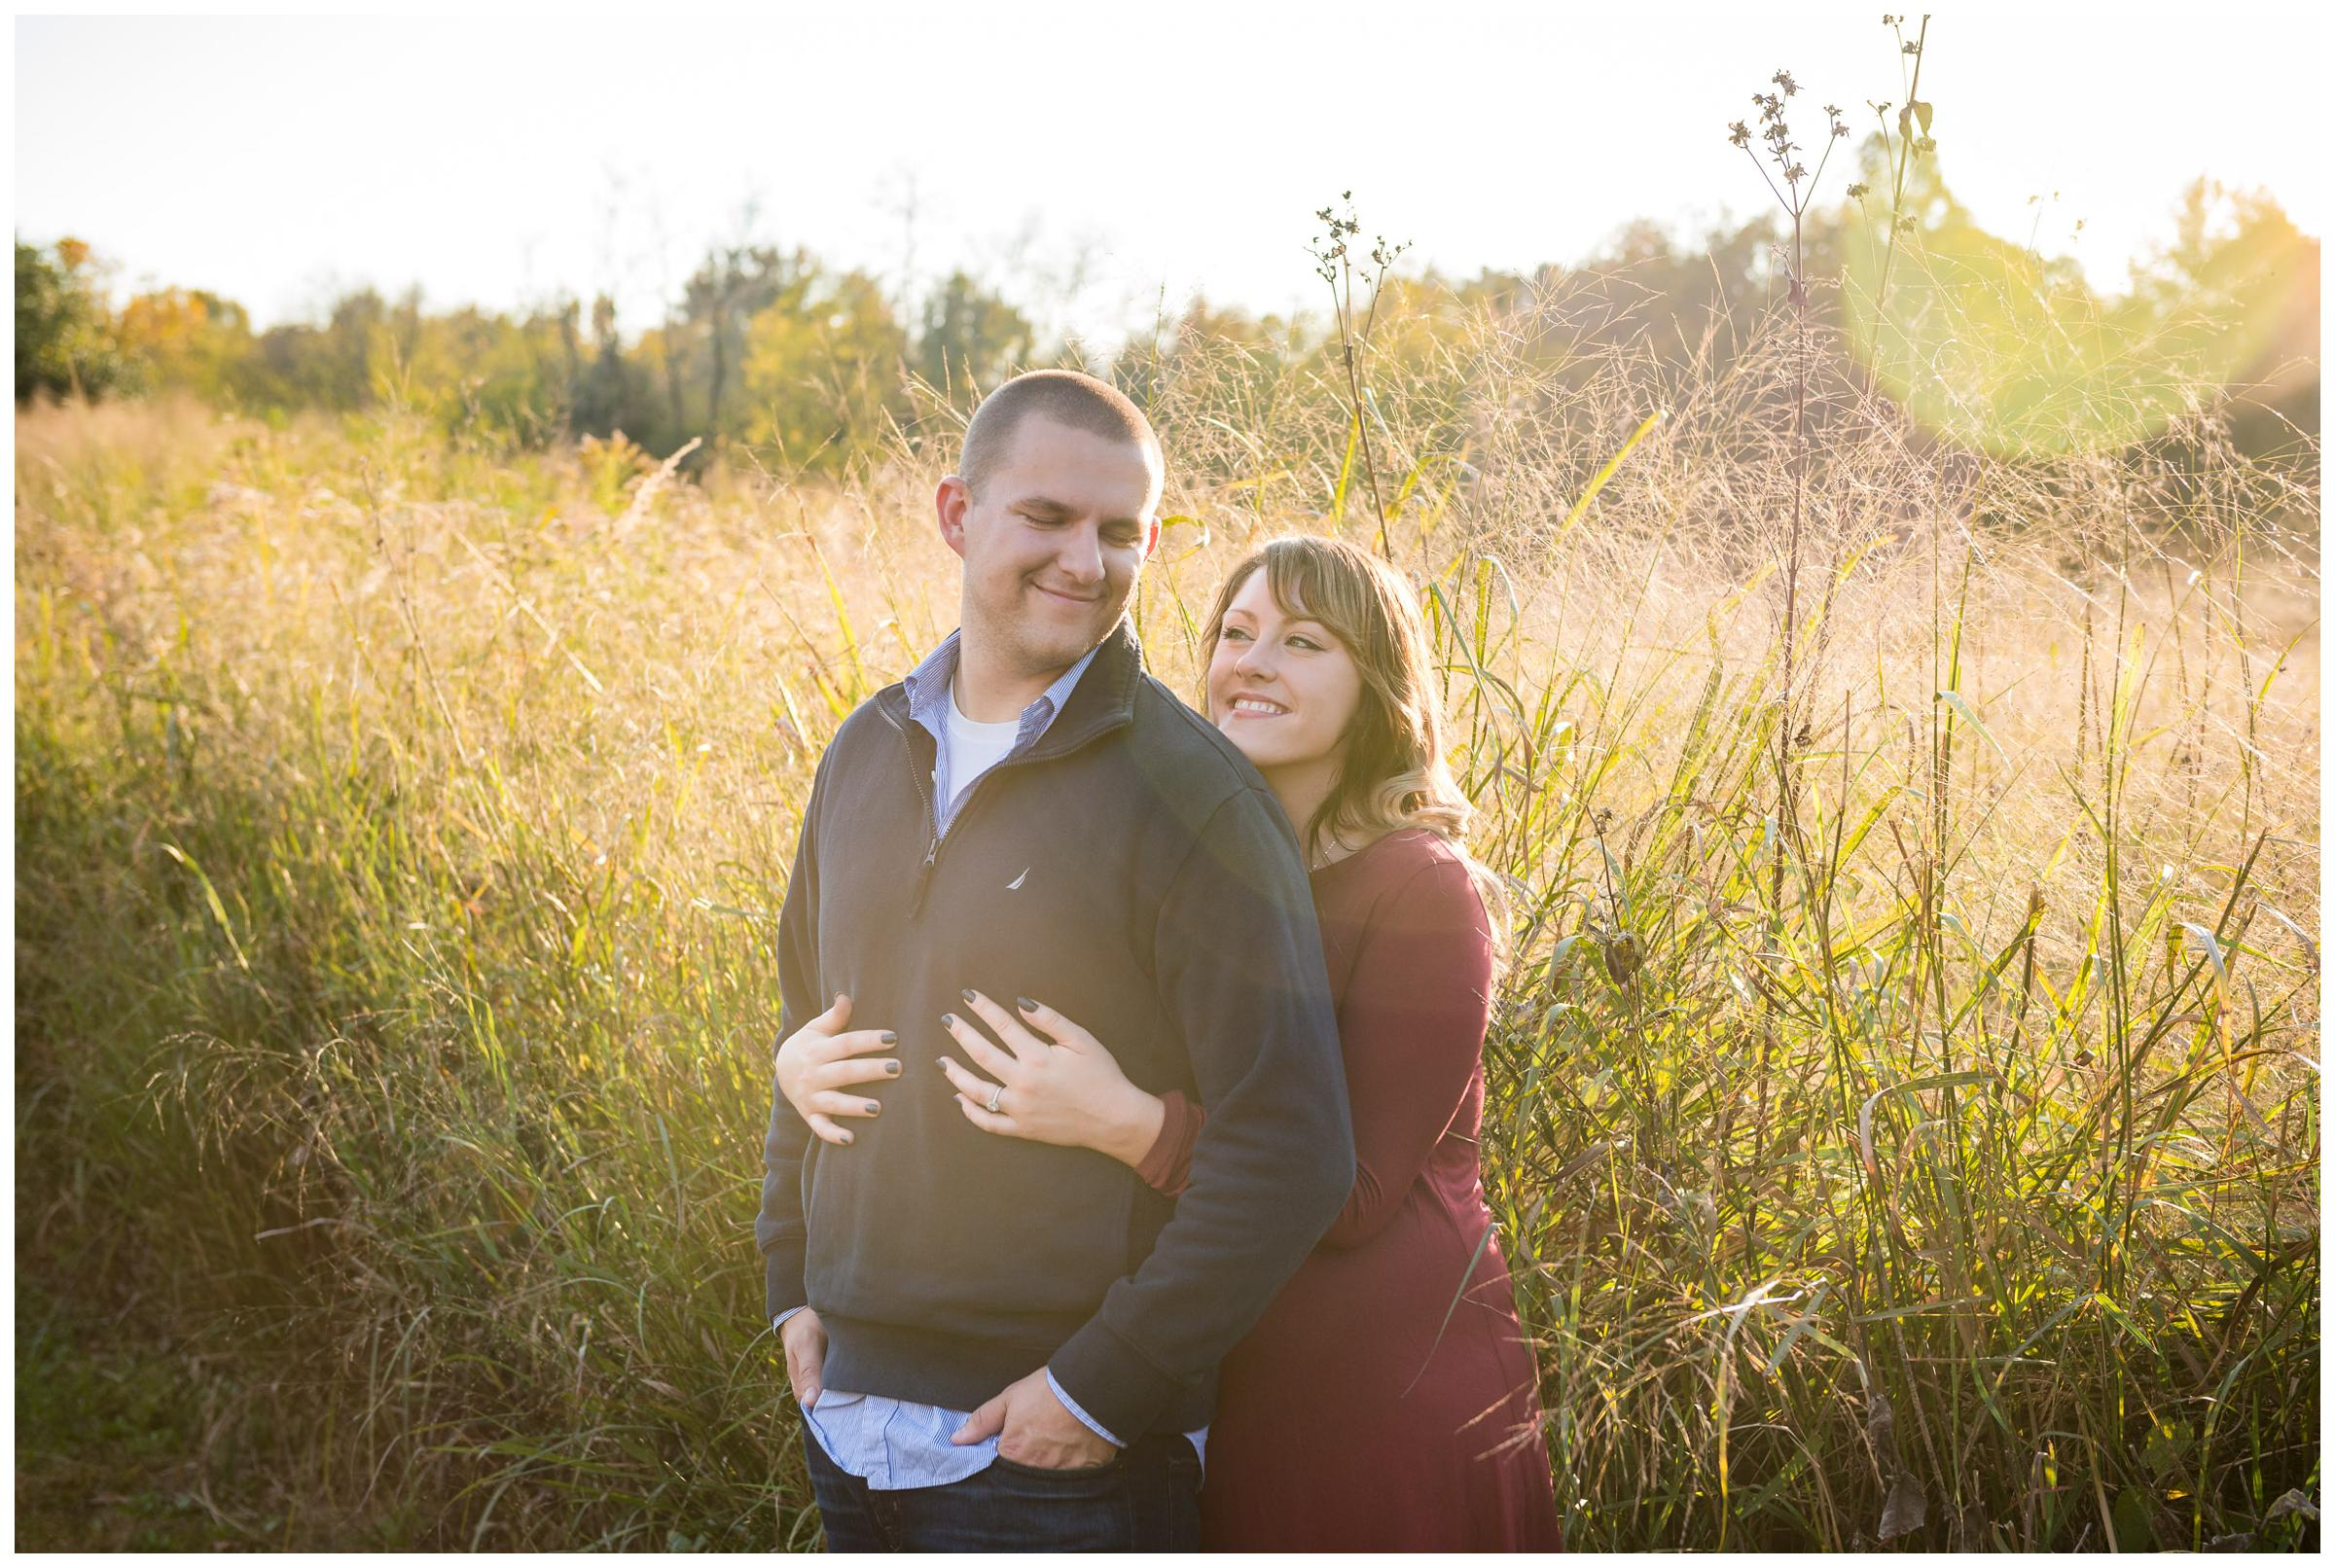 golden hour engagement session in field